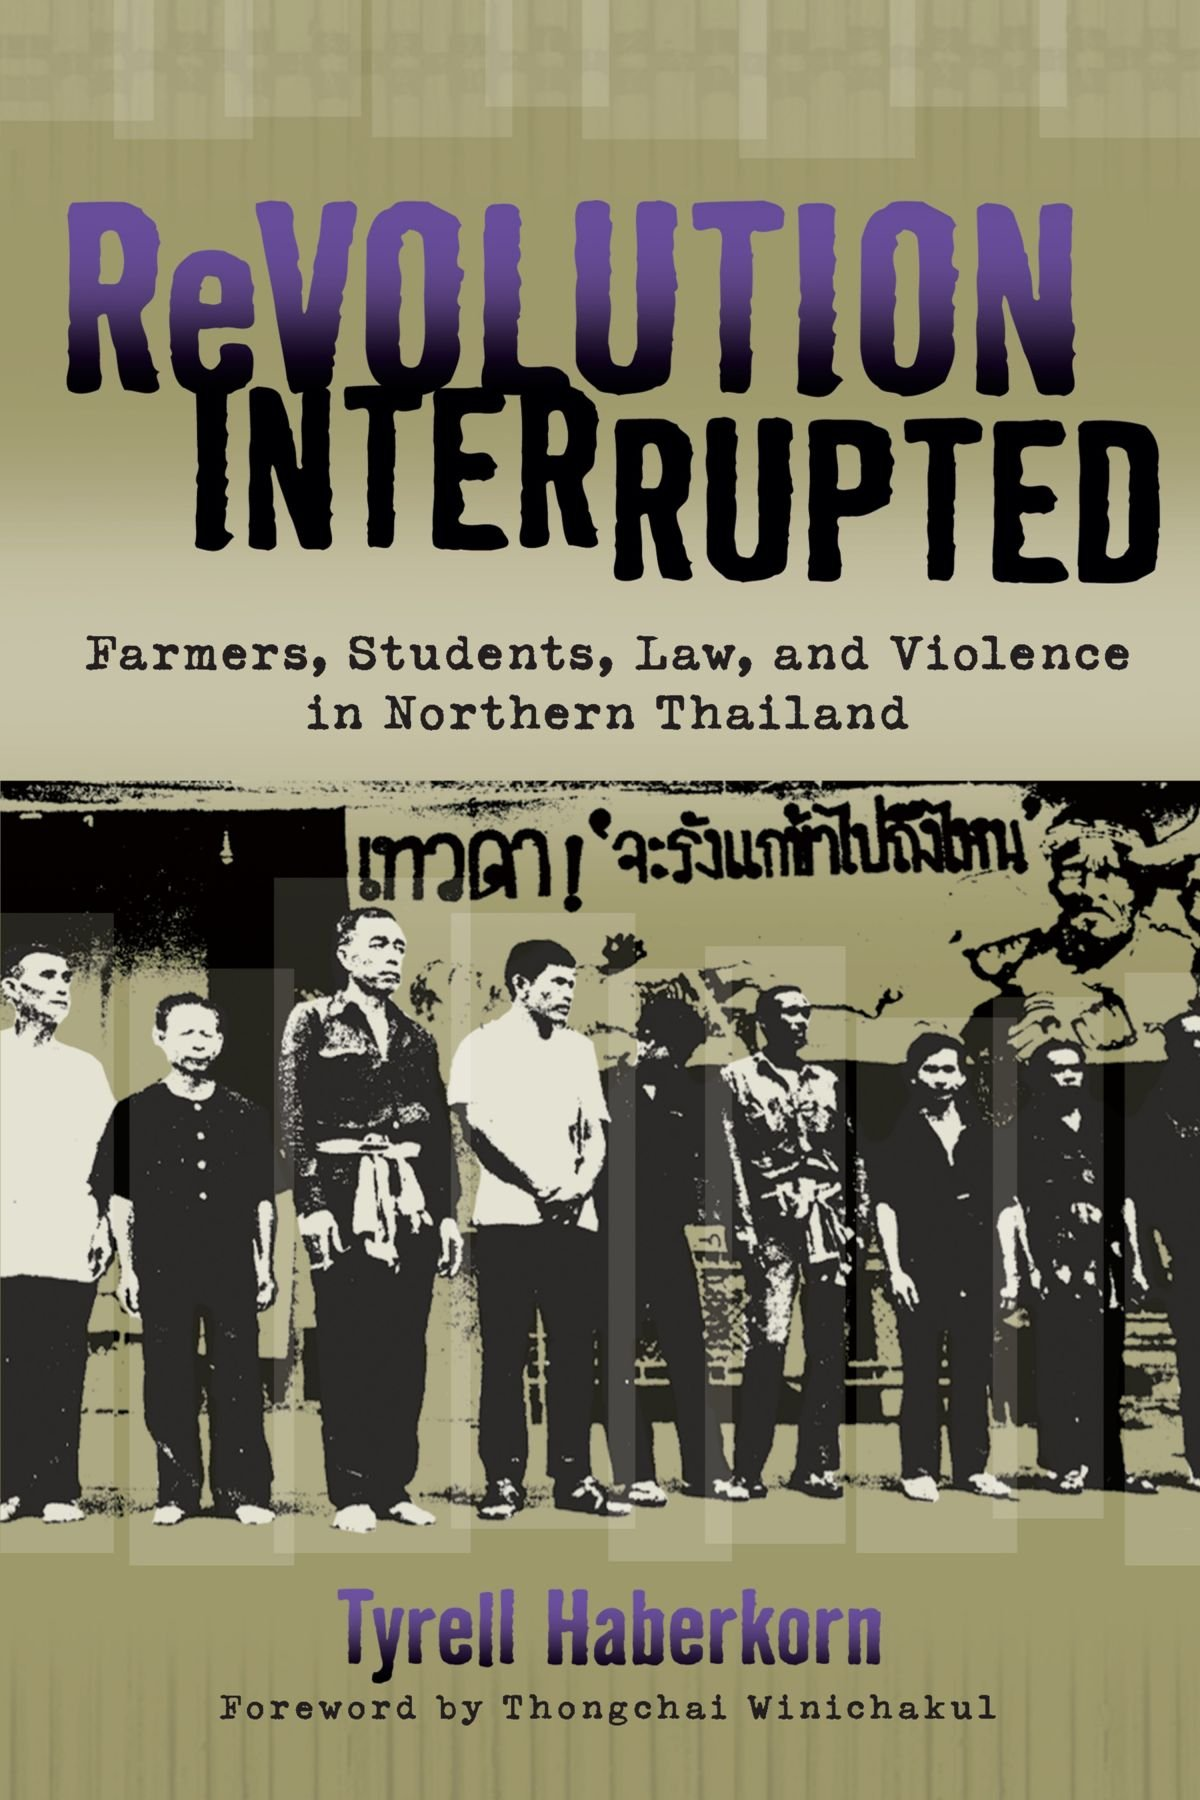 Revolution Interrupted: Farmers, Students, Law, and Violence in Northern Thailand (New Perspectives in SE Asian Studies): Haberkorn, Tyrell, Winichakul, Thongchai: 9780299281847: Amazon.com: Books